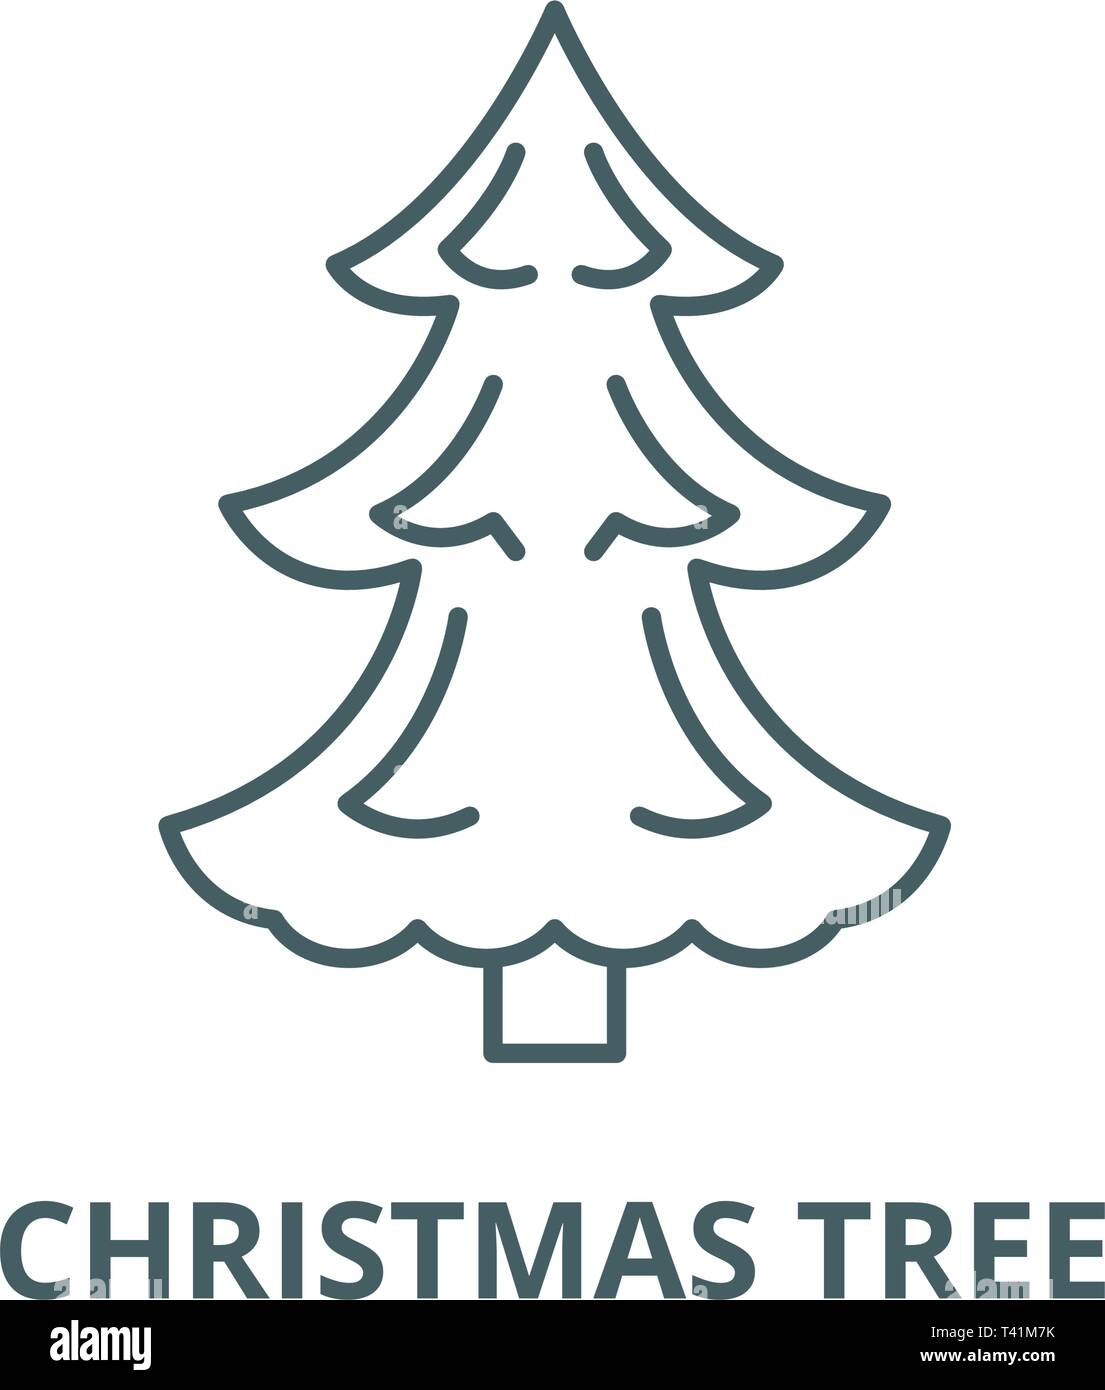 Christmas Tree Outline.Christmas Tree Line Icon Vector Christmas Tree Outline